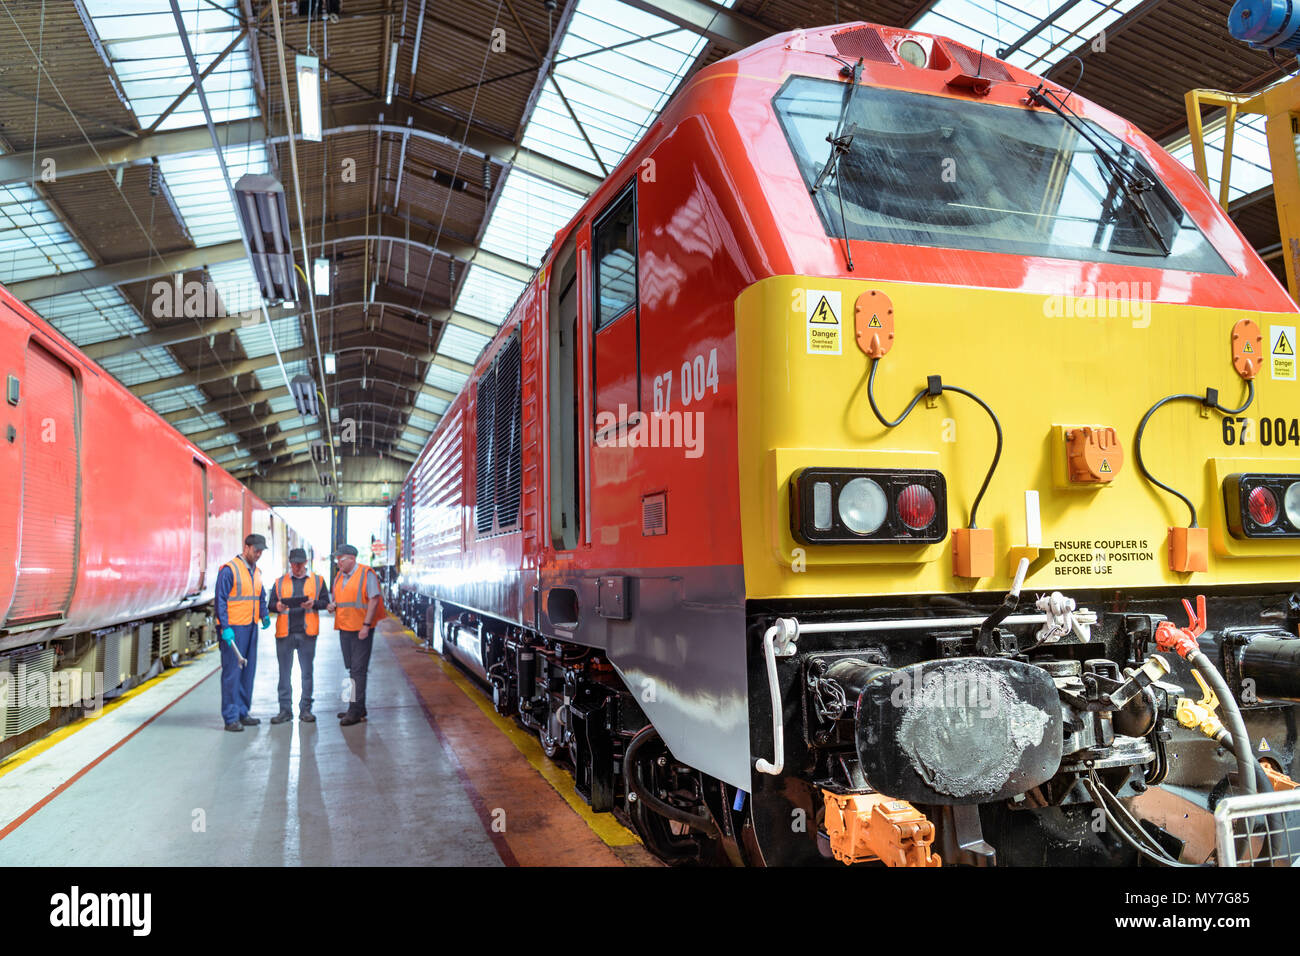 Engineers in discussion next to refurbished locomotive in train engineering factory - Stock Image